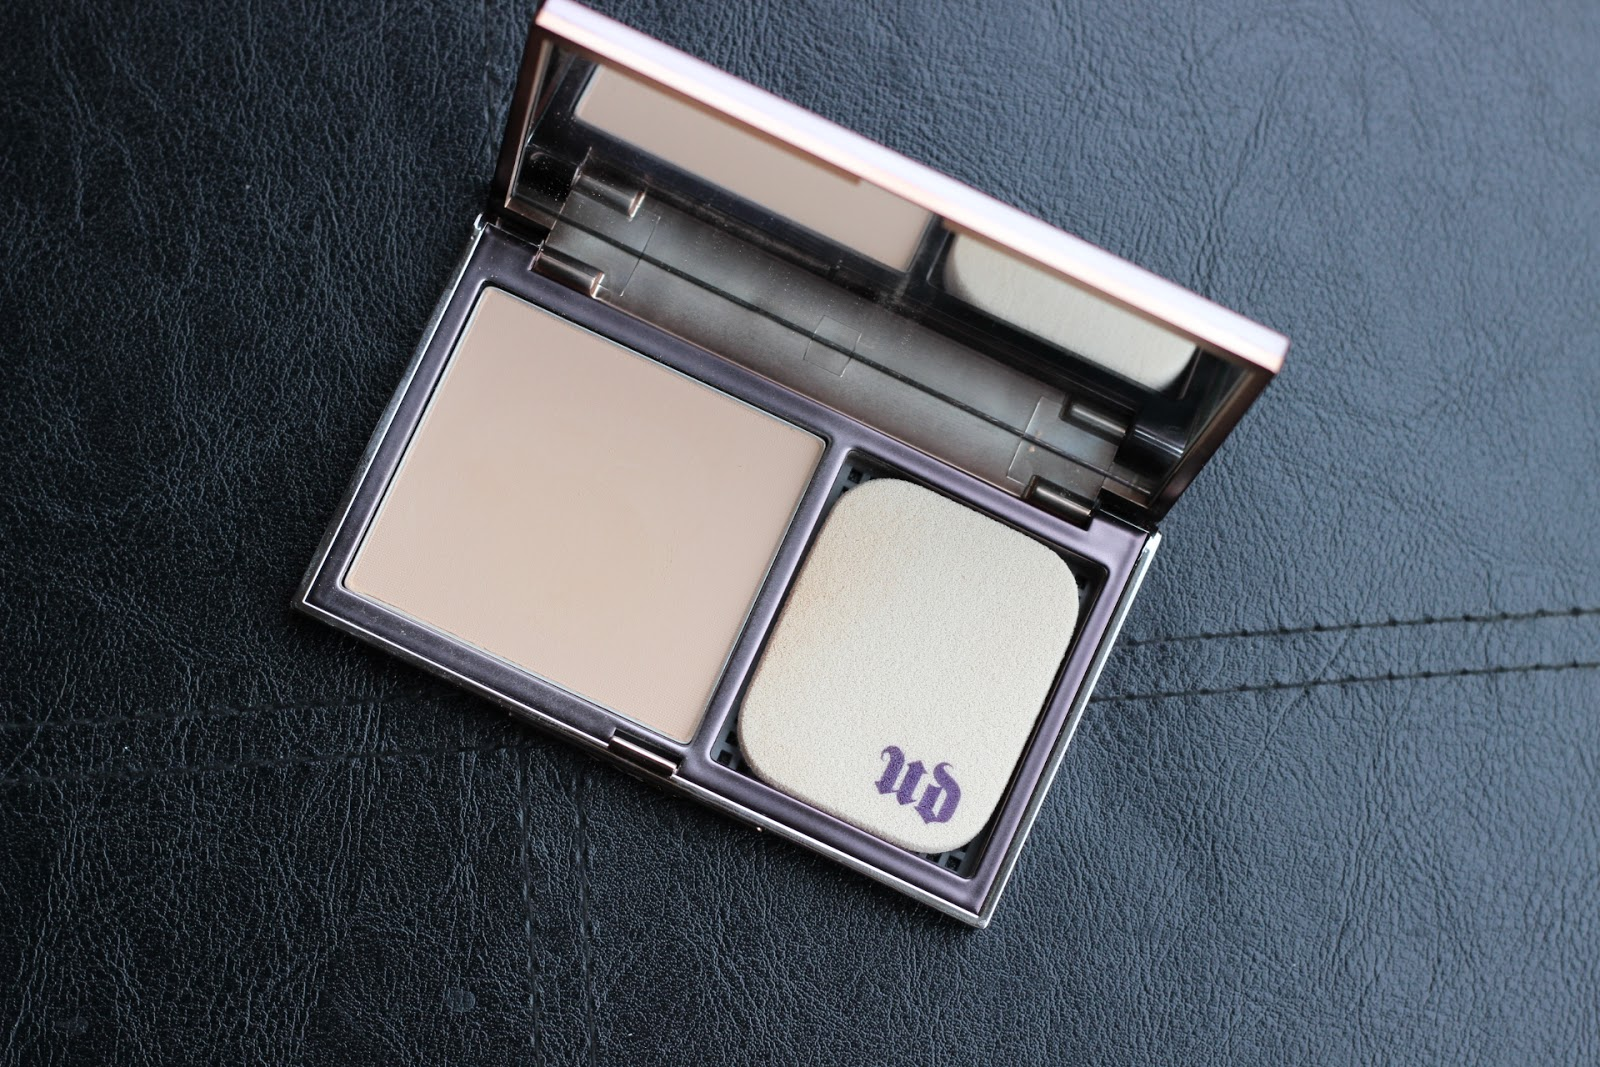 the new urban decay powder foundation 2015